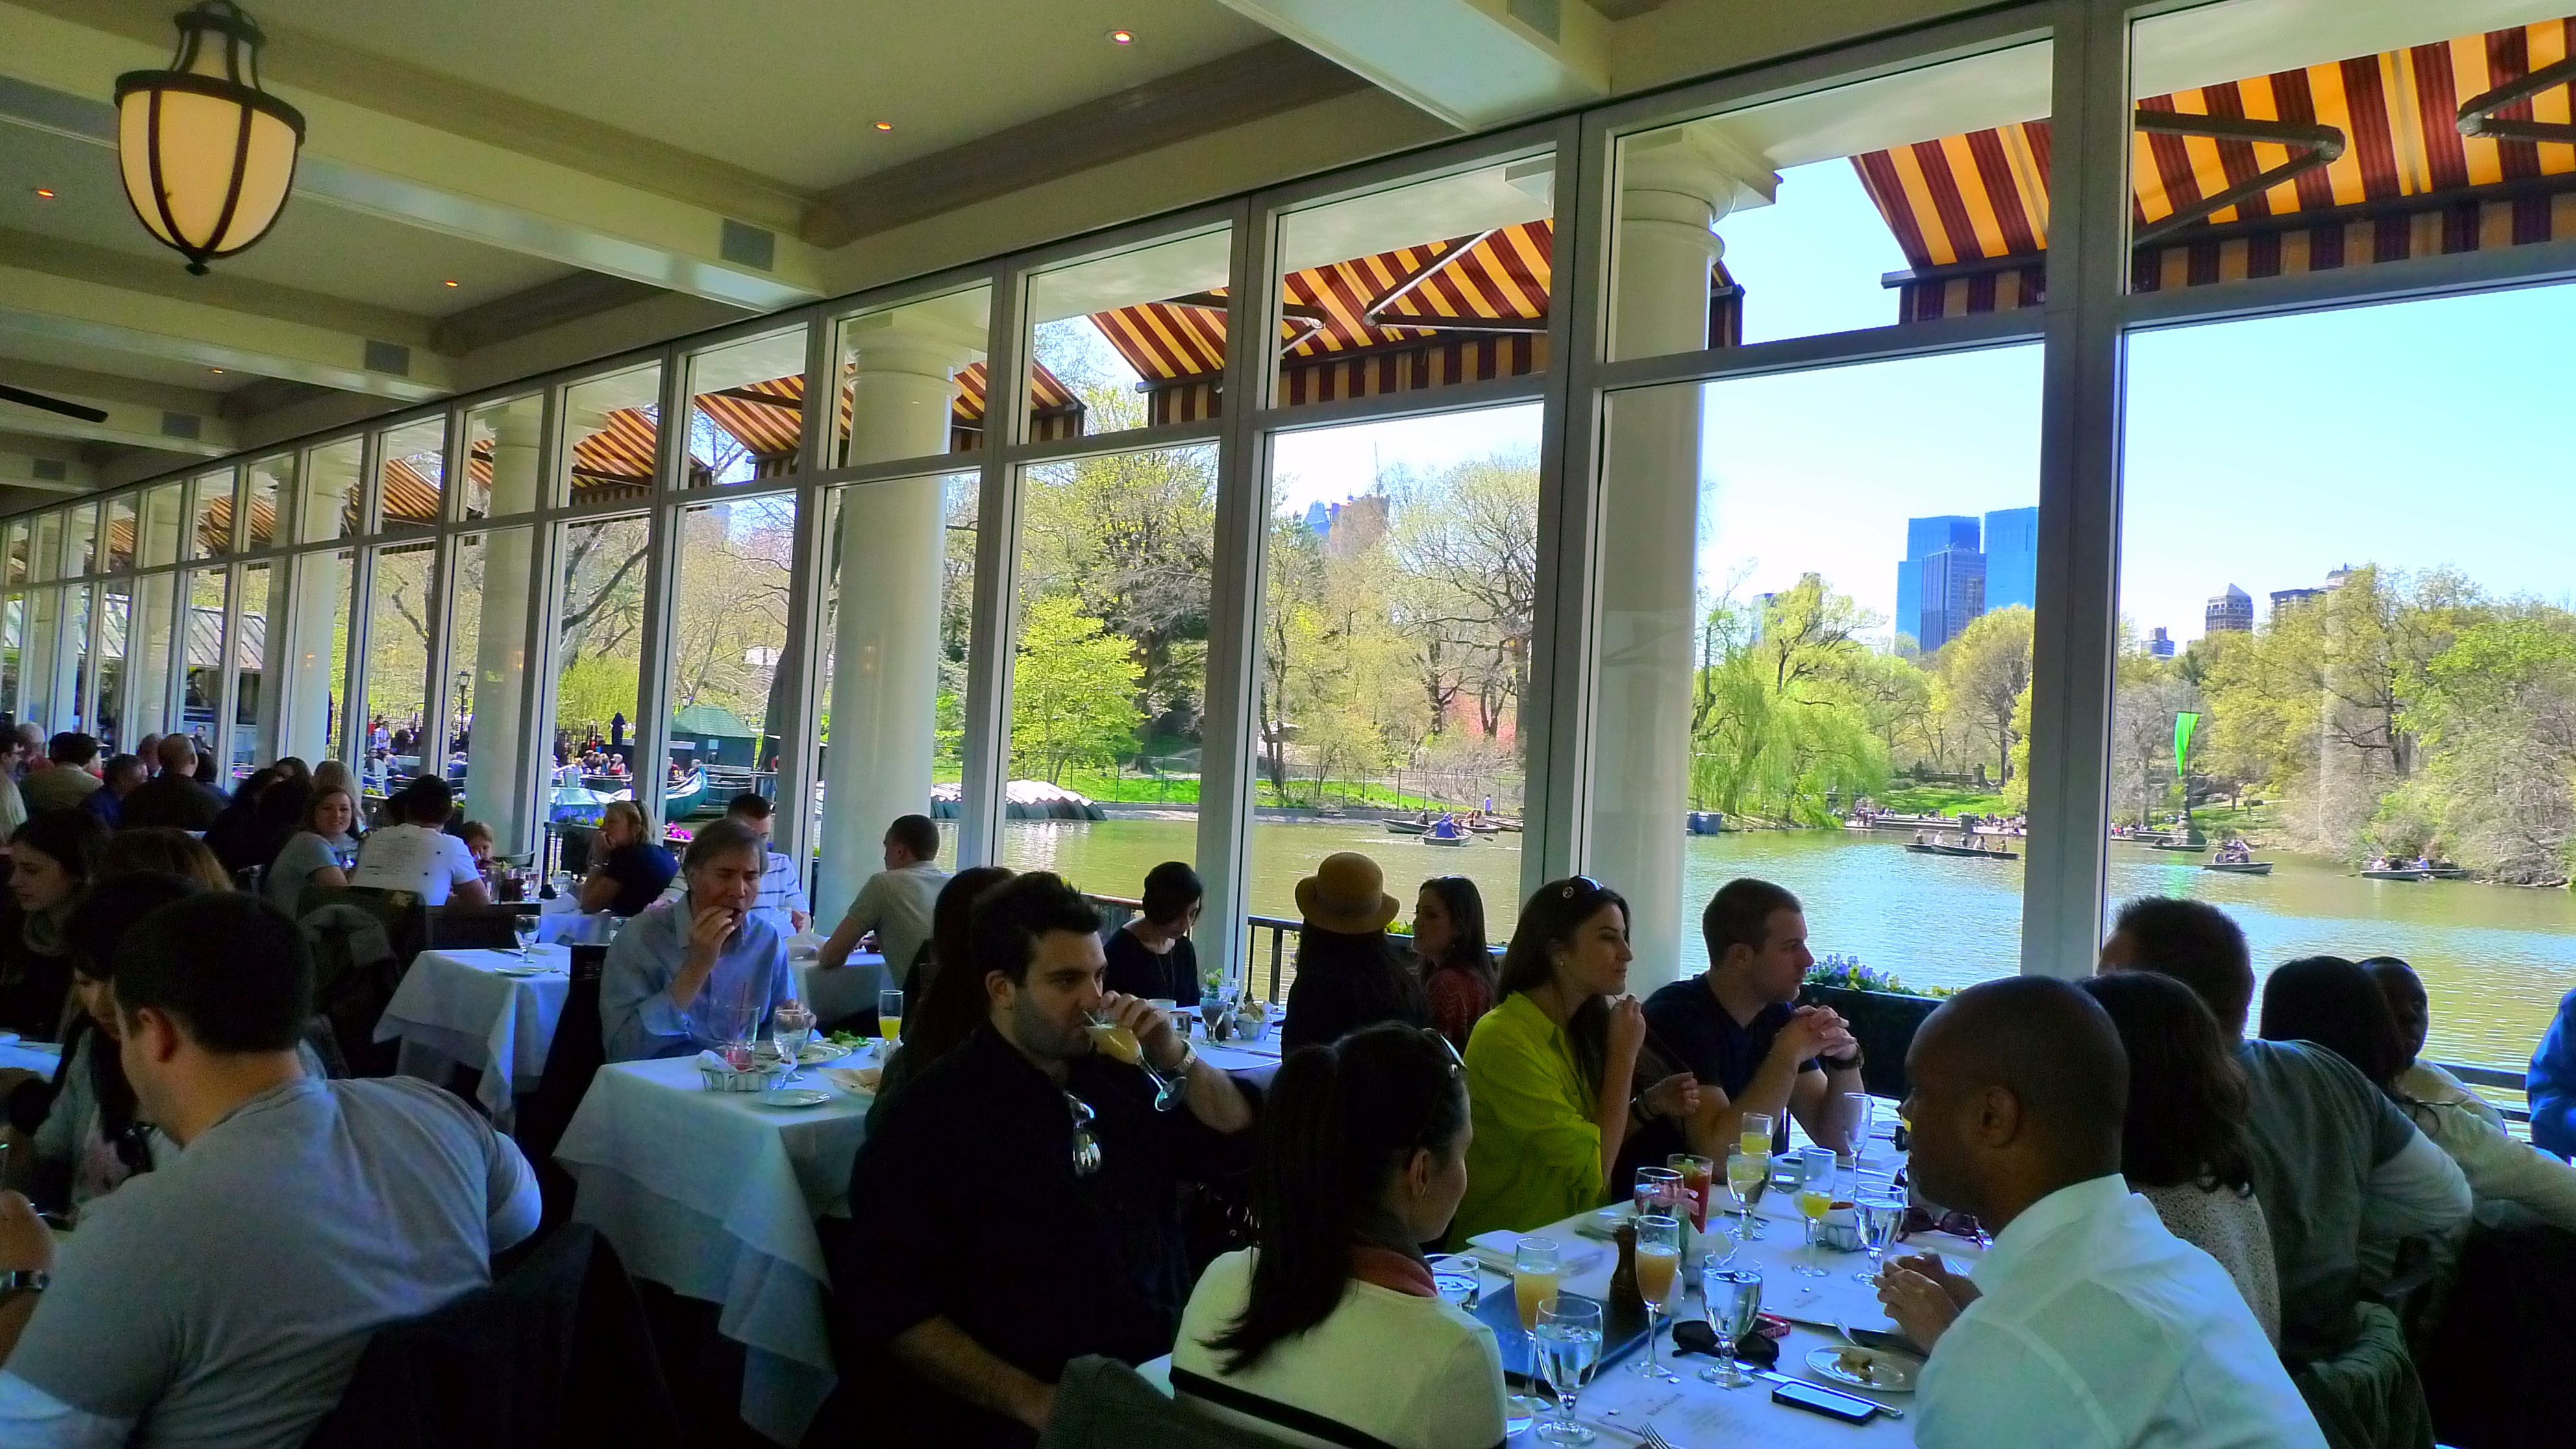 Restaurant table with food - The Central Park Boathouse Nyc Food Comas